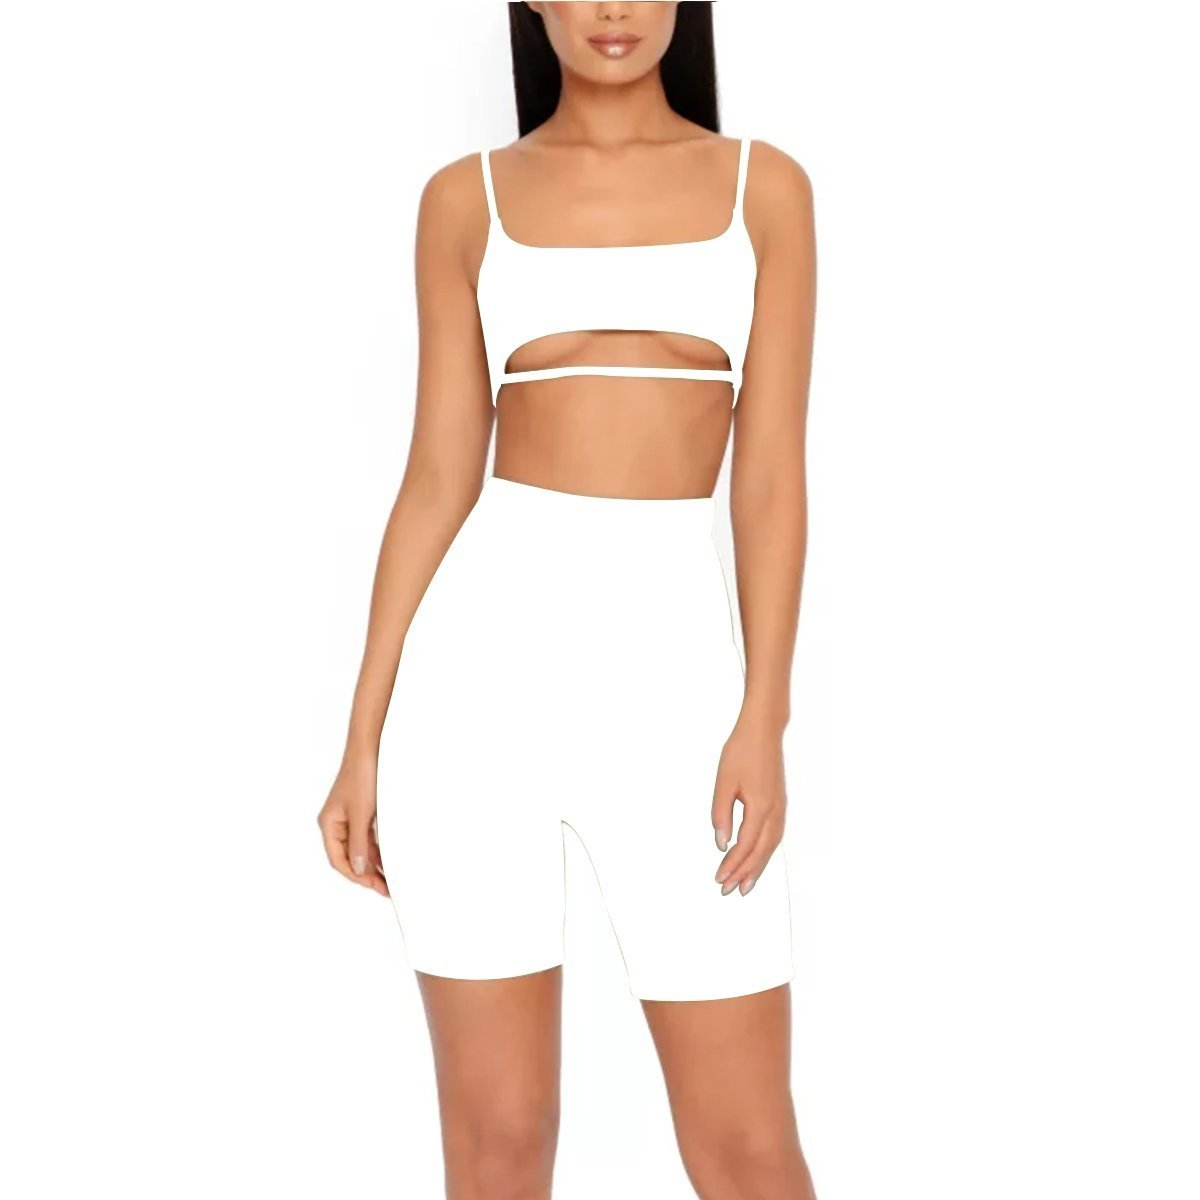 LUFENG Women's Suit Two Pieces Set Sexy Sleeveless Strapless Crop Top Shorts Set White S